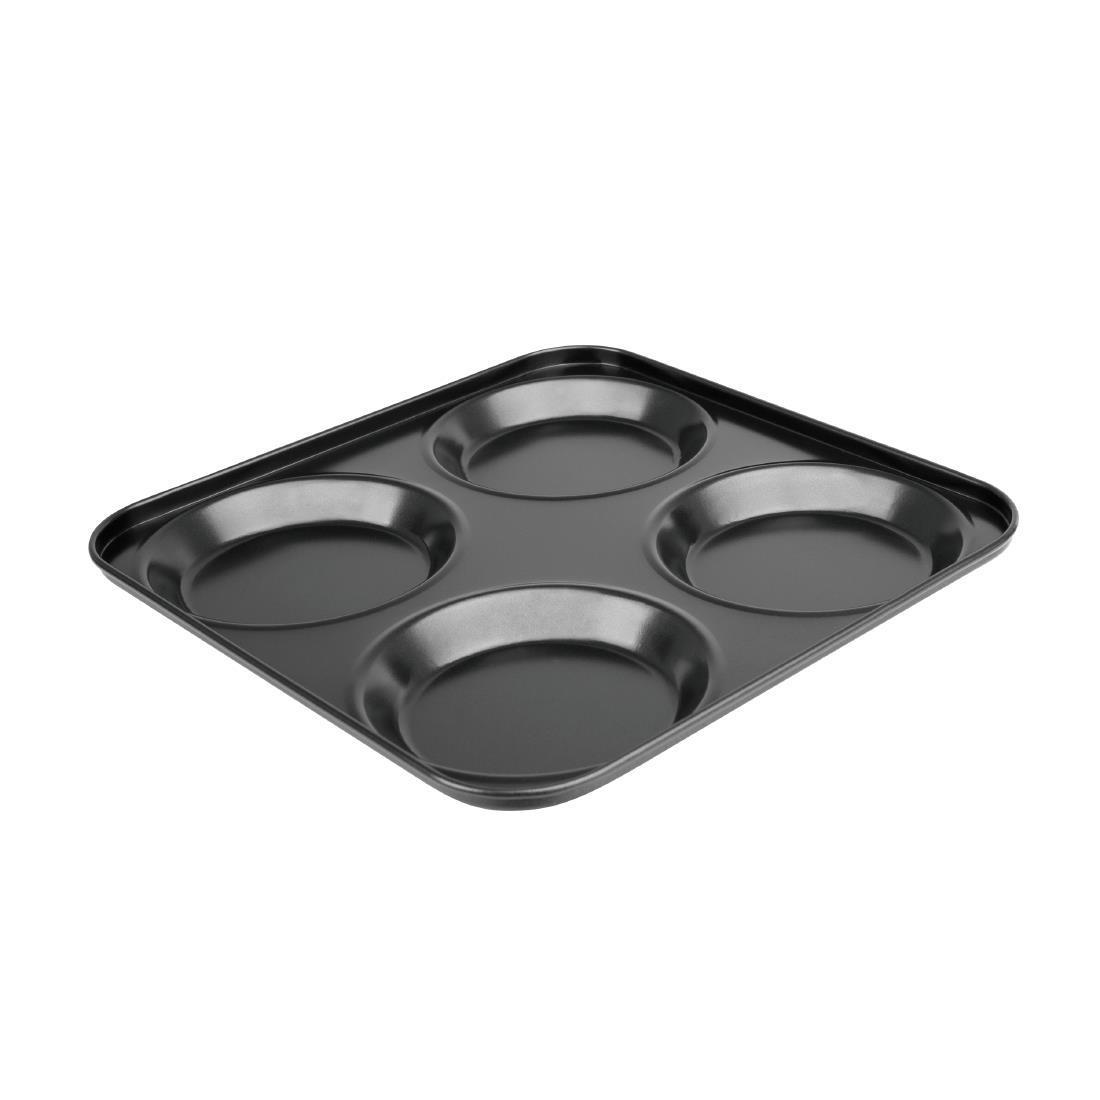 Vogue Carbon Steel Non-Stick Yorkshire Pudding Tray 4 Cup - Each - GD012